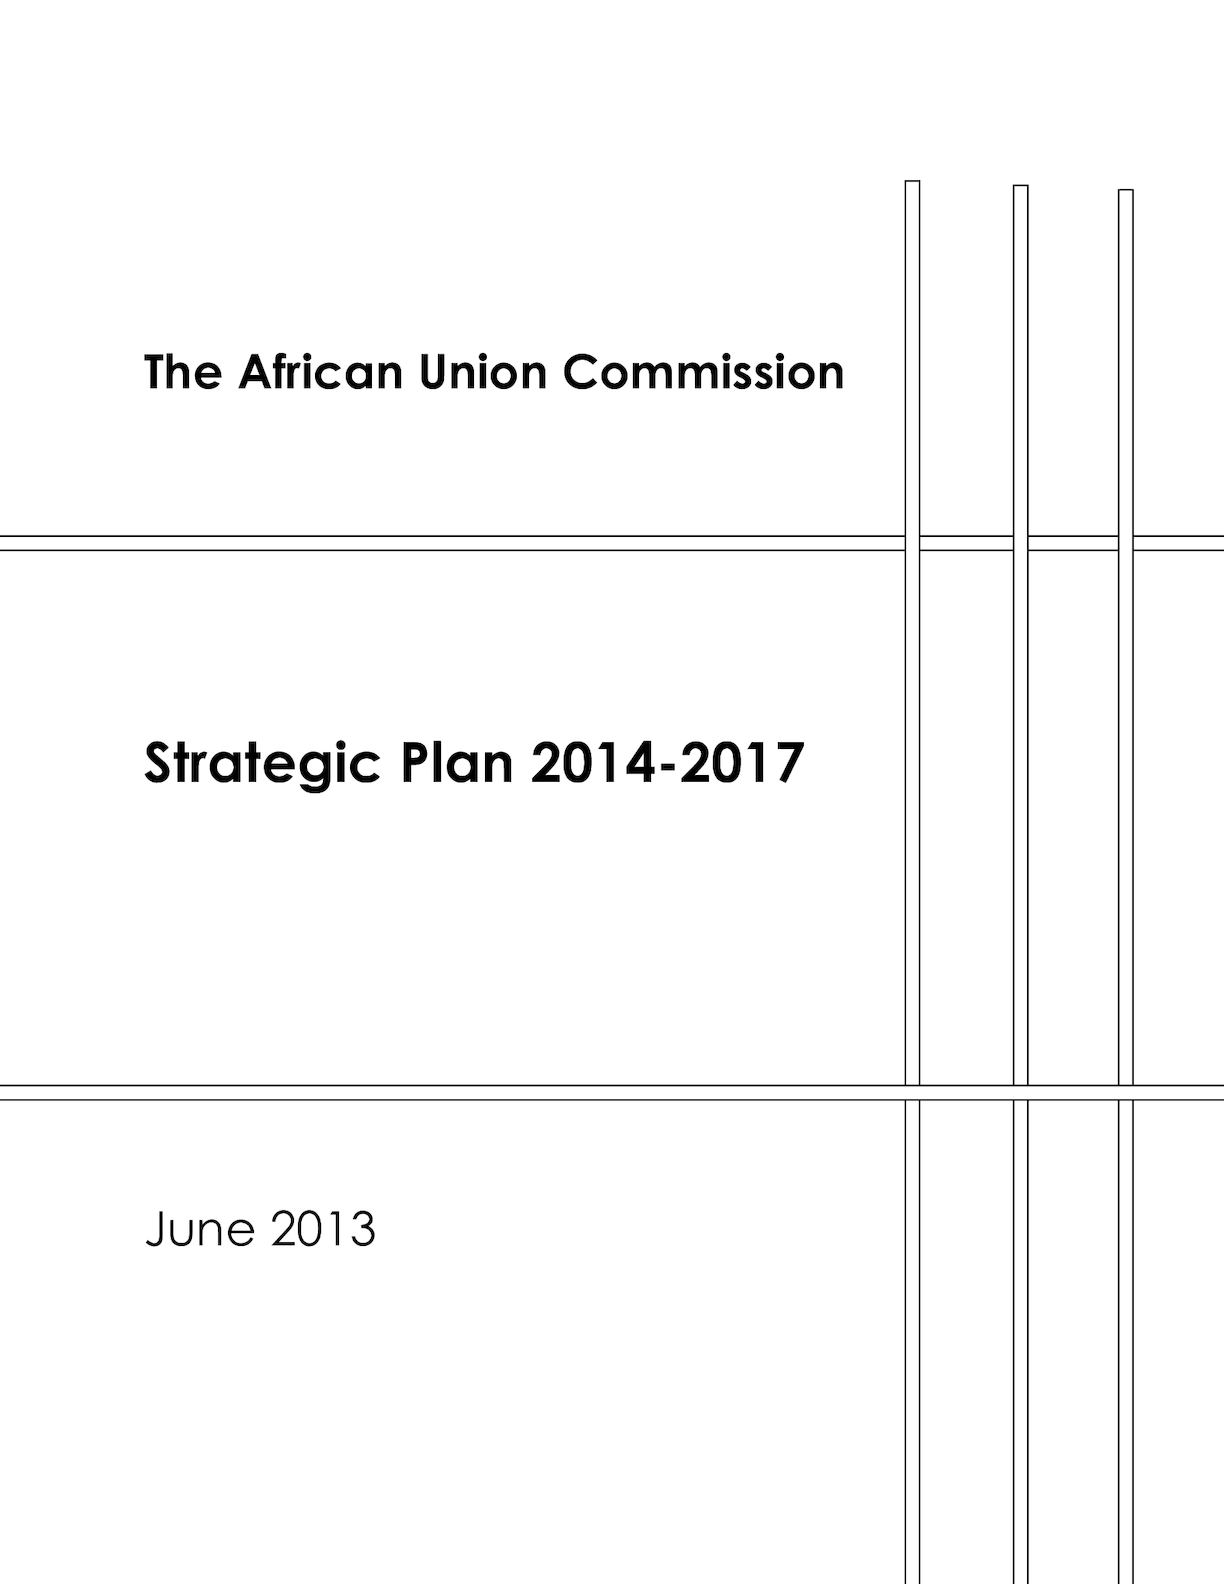 Assembly AU 3 (XXI) - Strategic Plan 2014 - 2017 Rev June 6 CLEAN